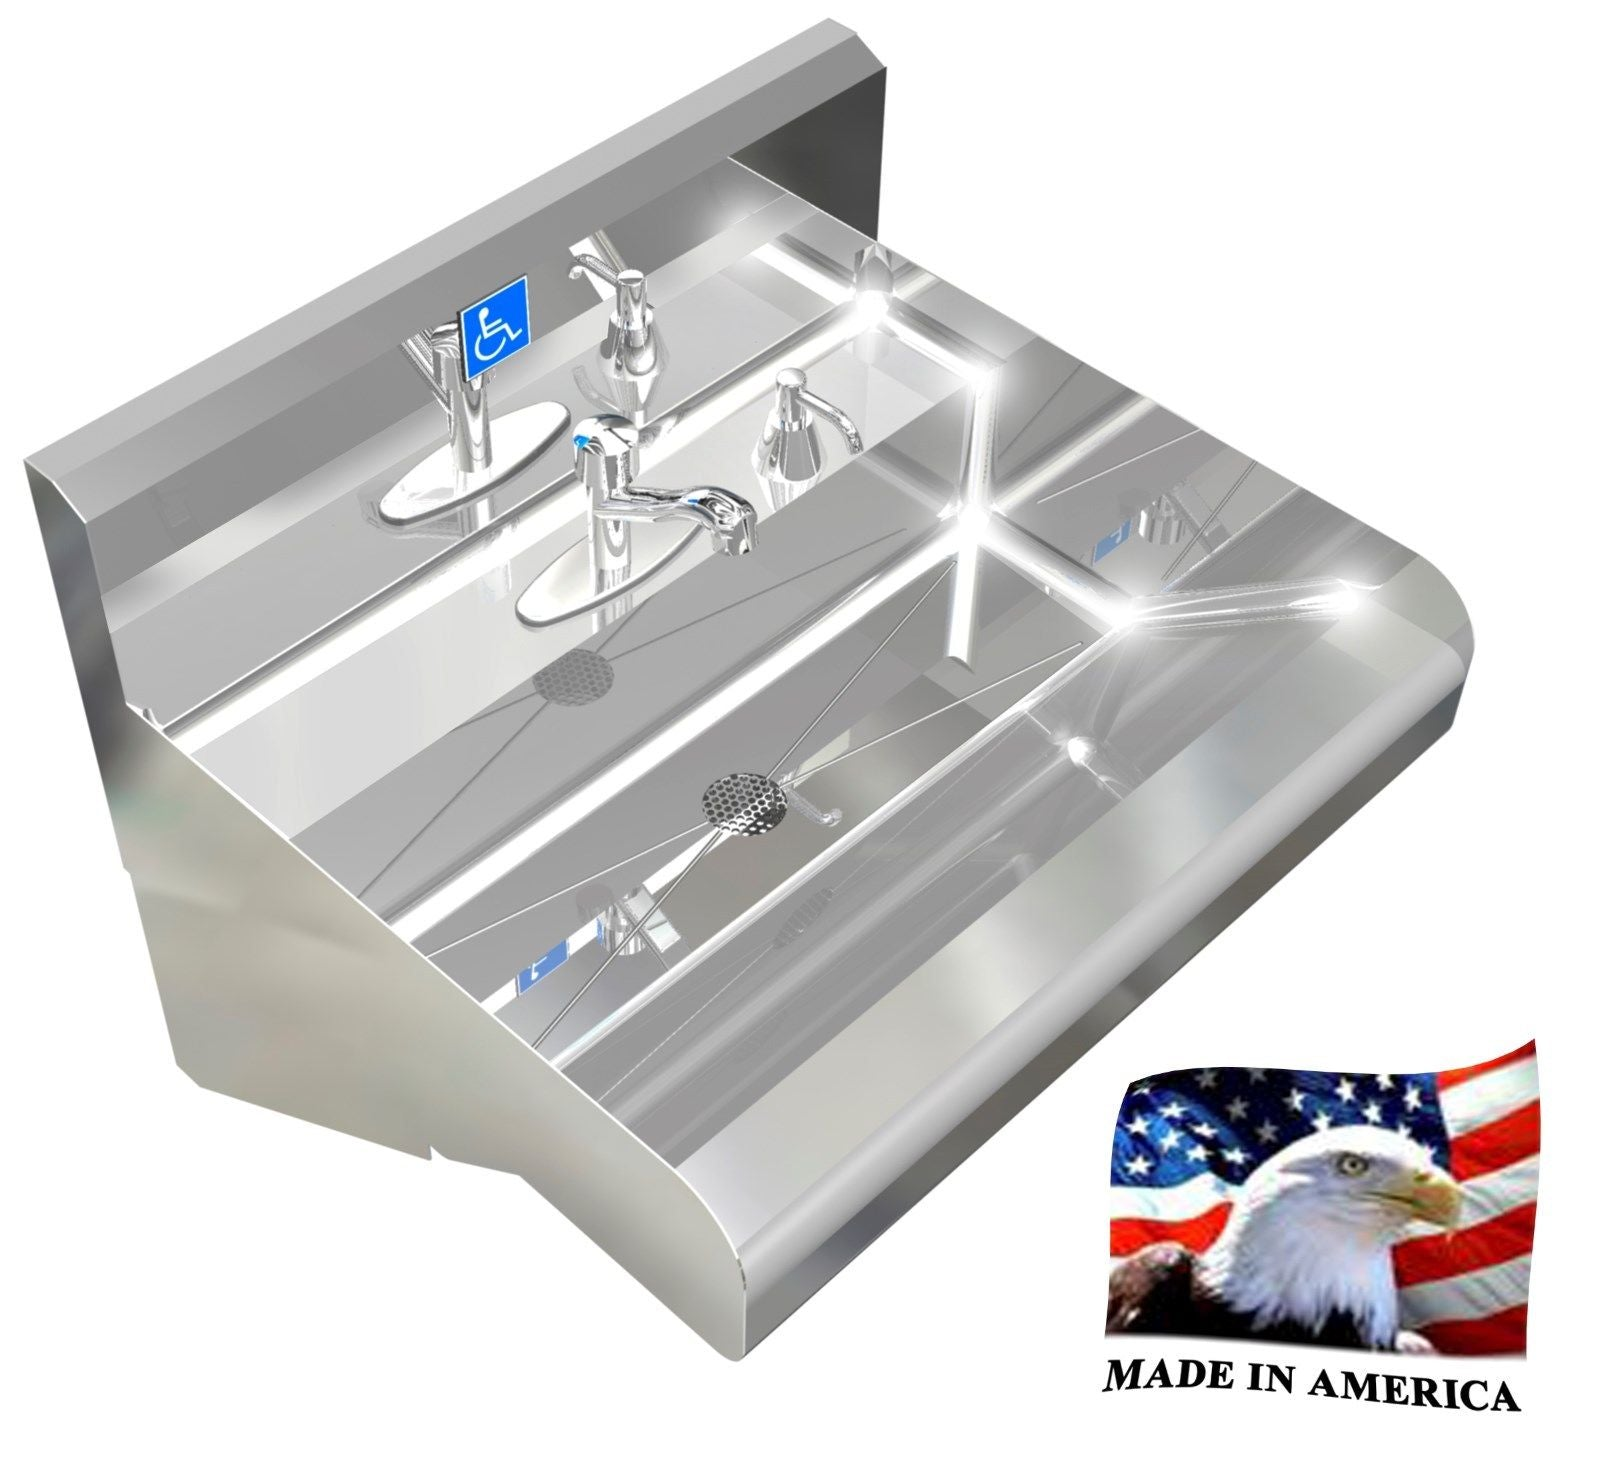 "Stainless Steel ADA Compliant Elite Hand Sink, 24"" Metering Faucets 